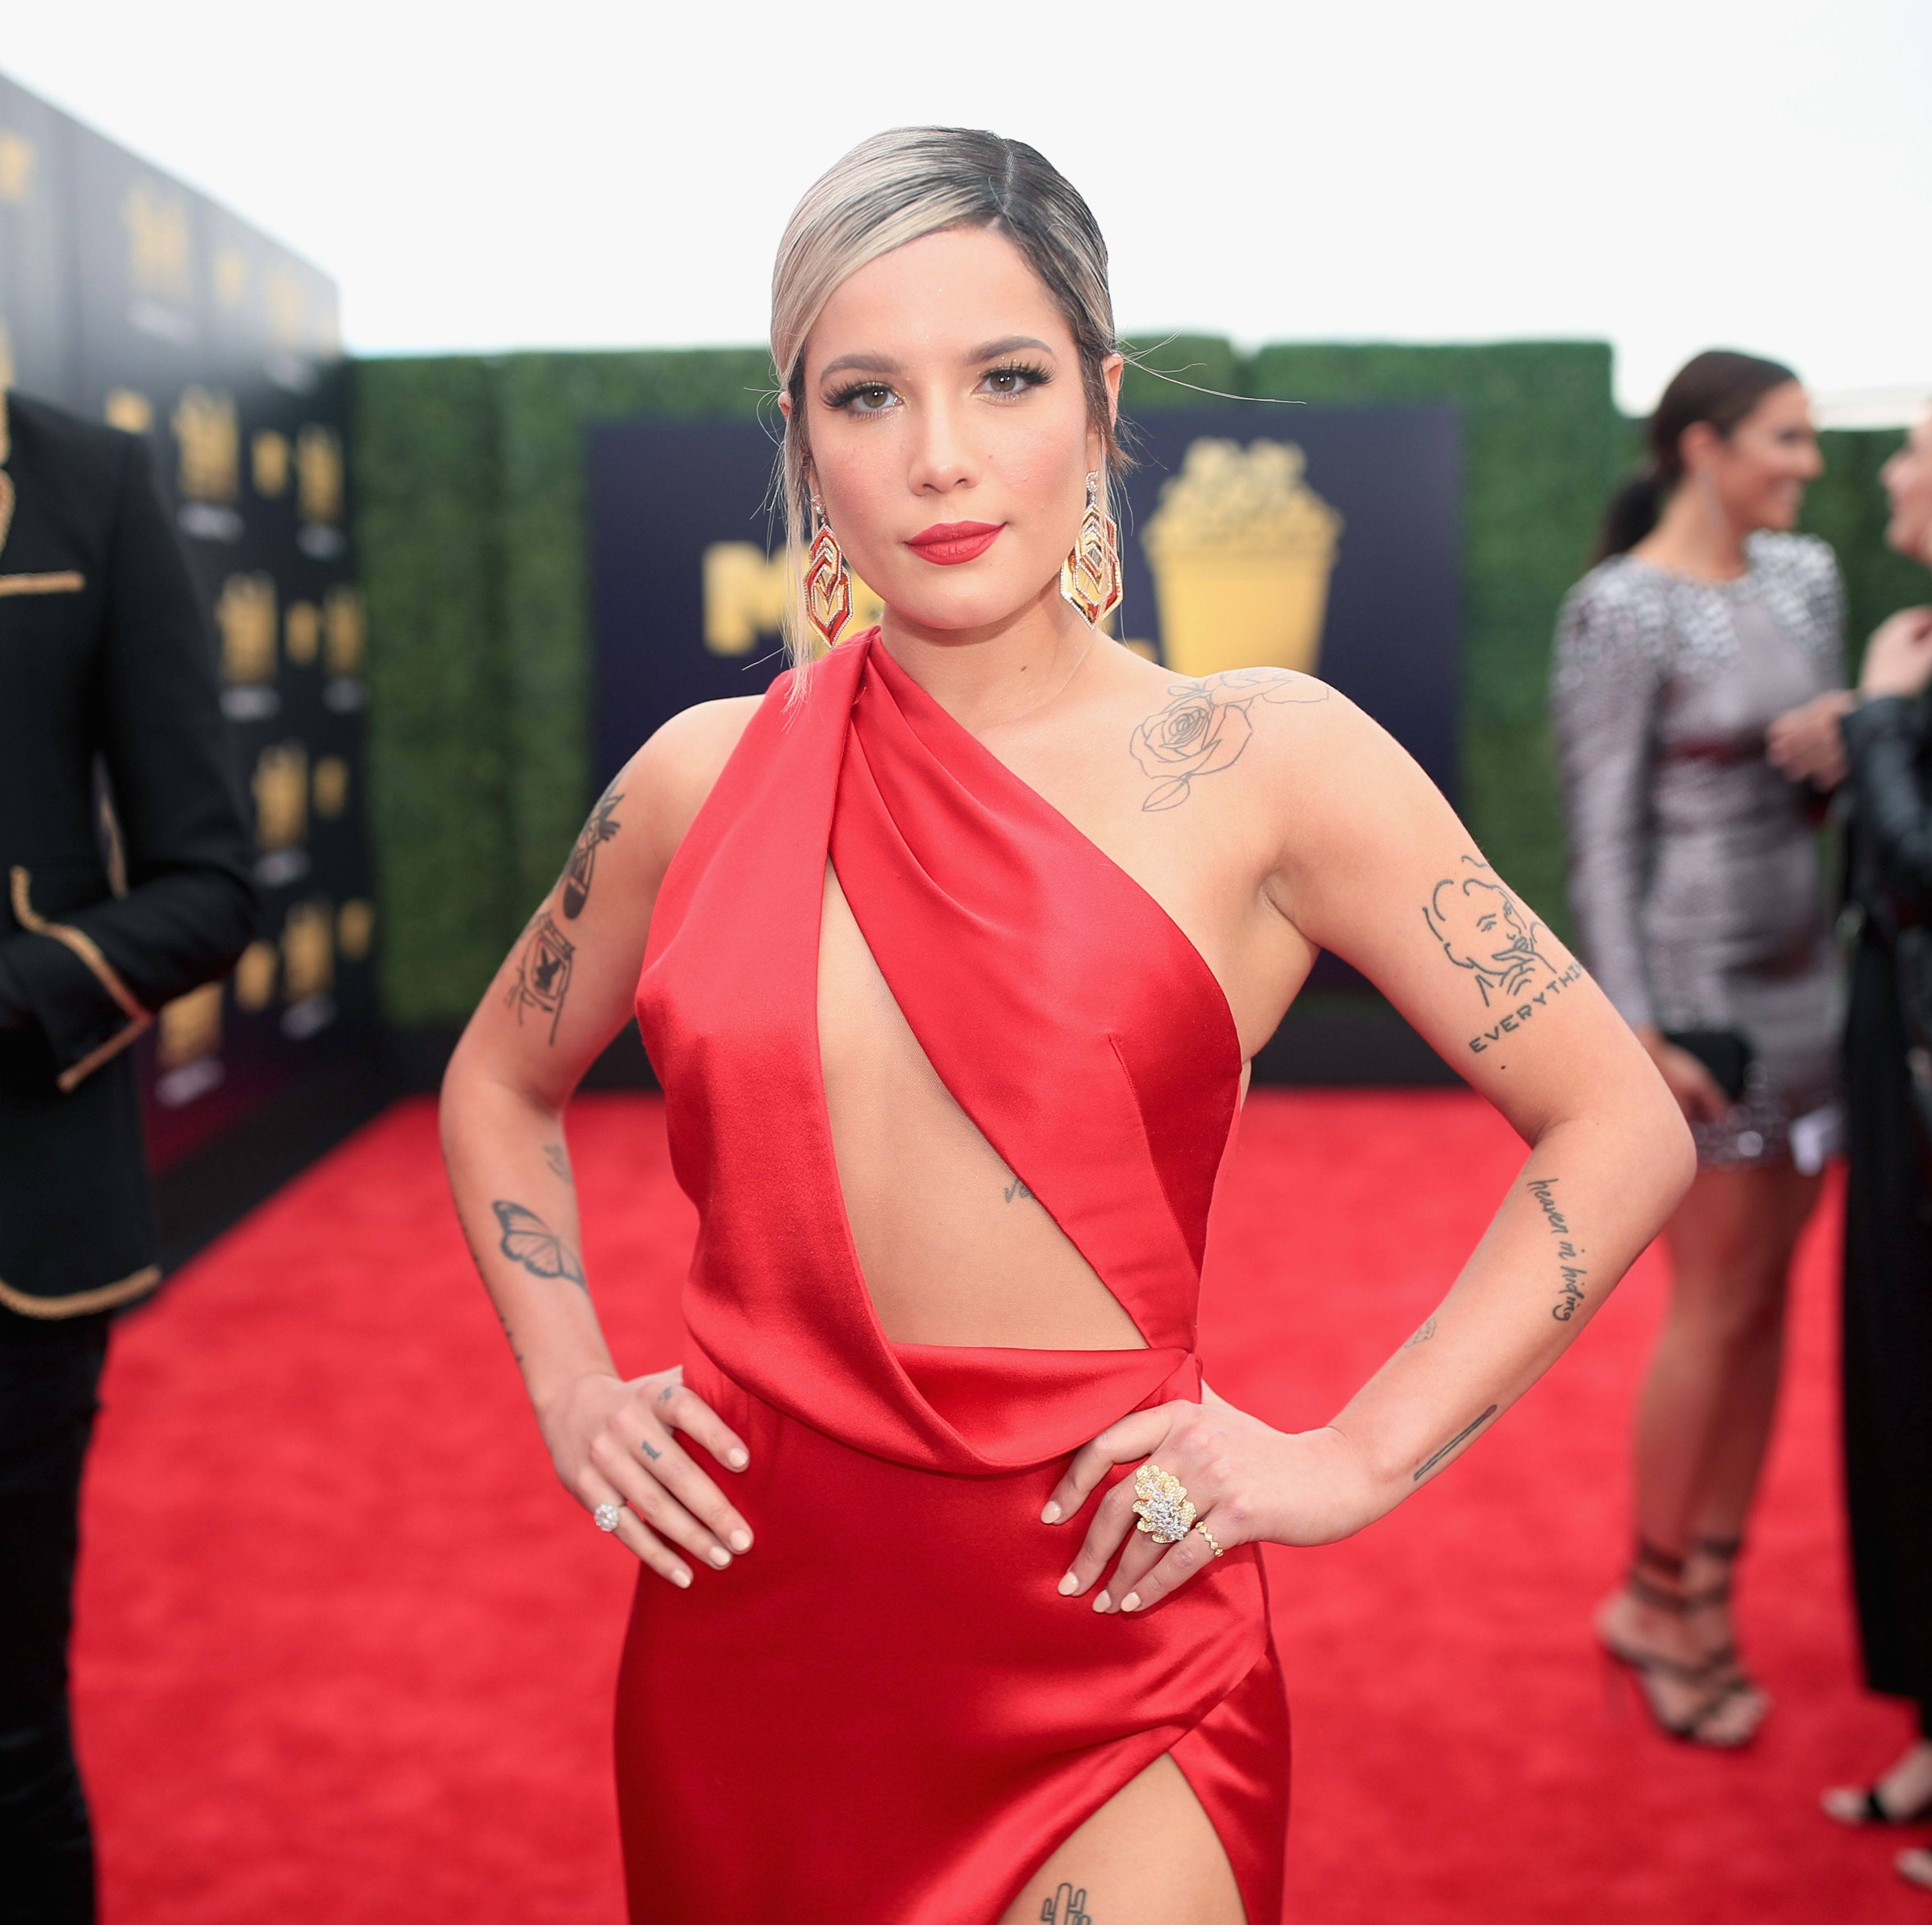 Everyone Thinks Halsey's Pregnant and She Just Issued a Response....